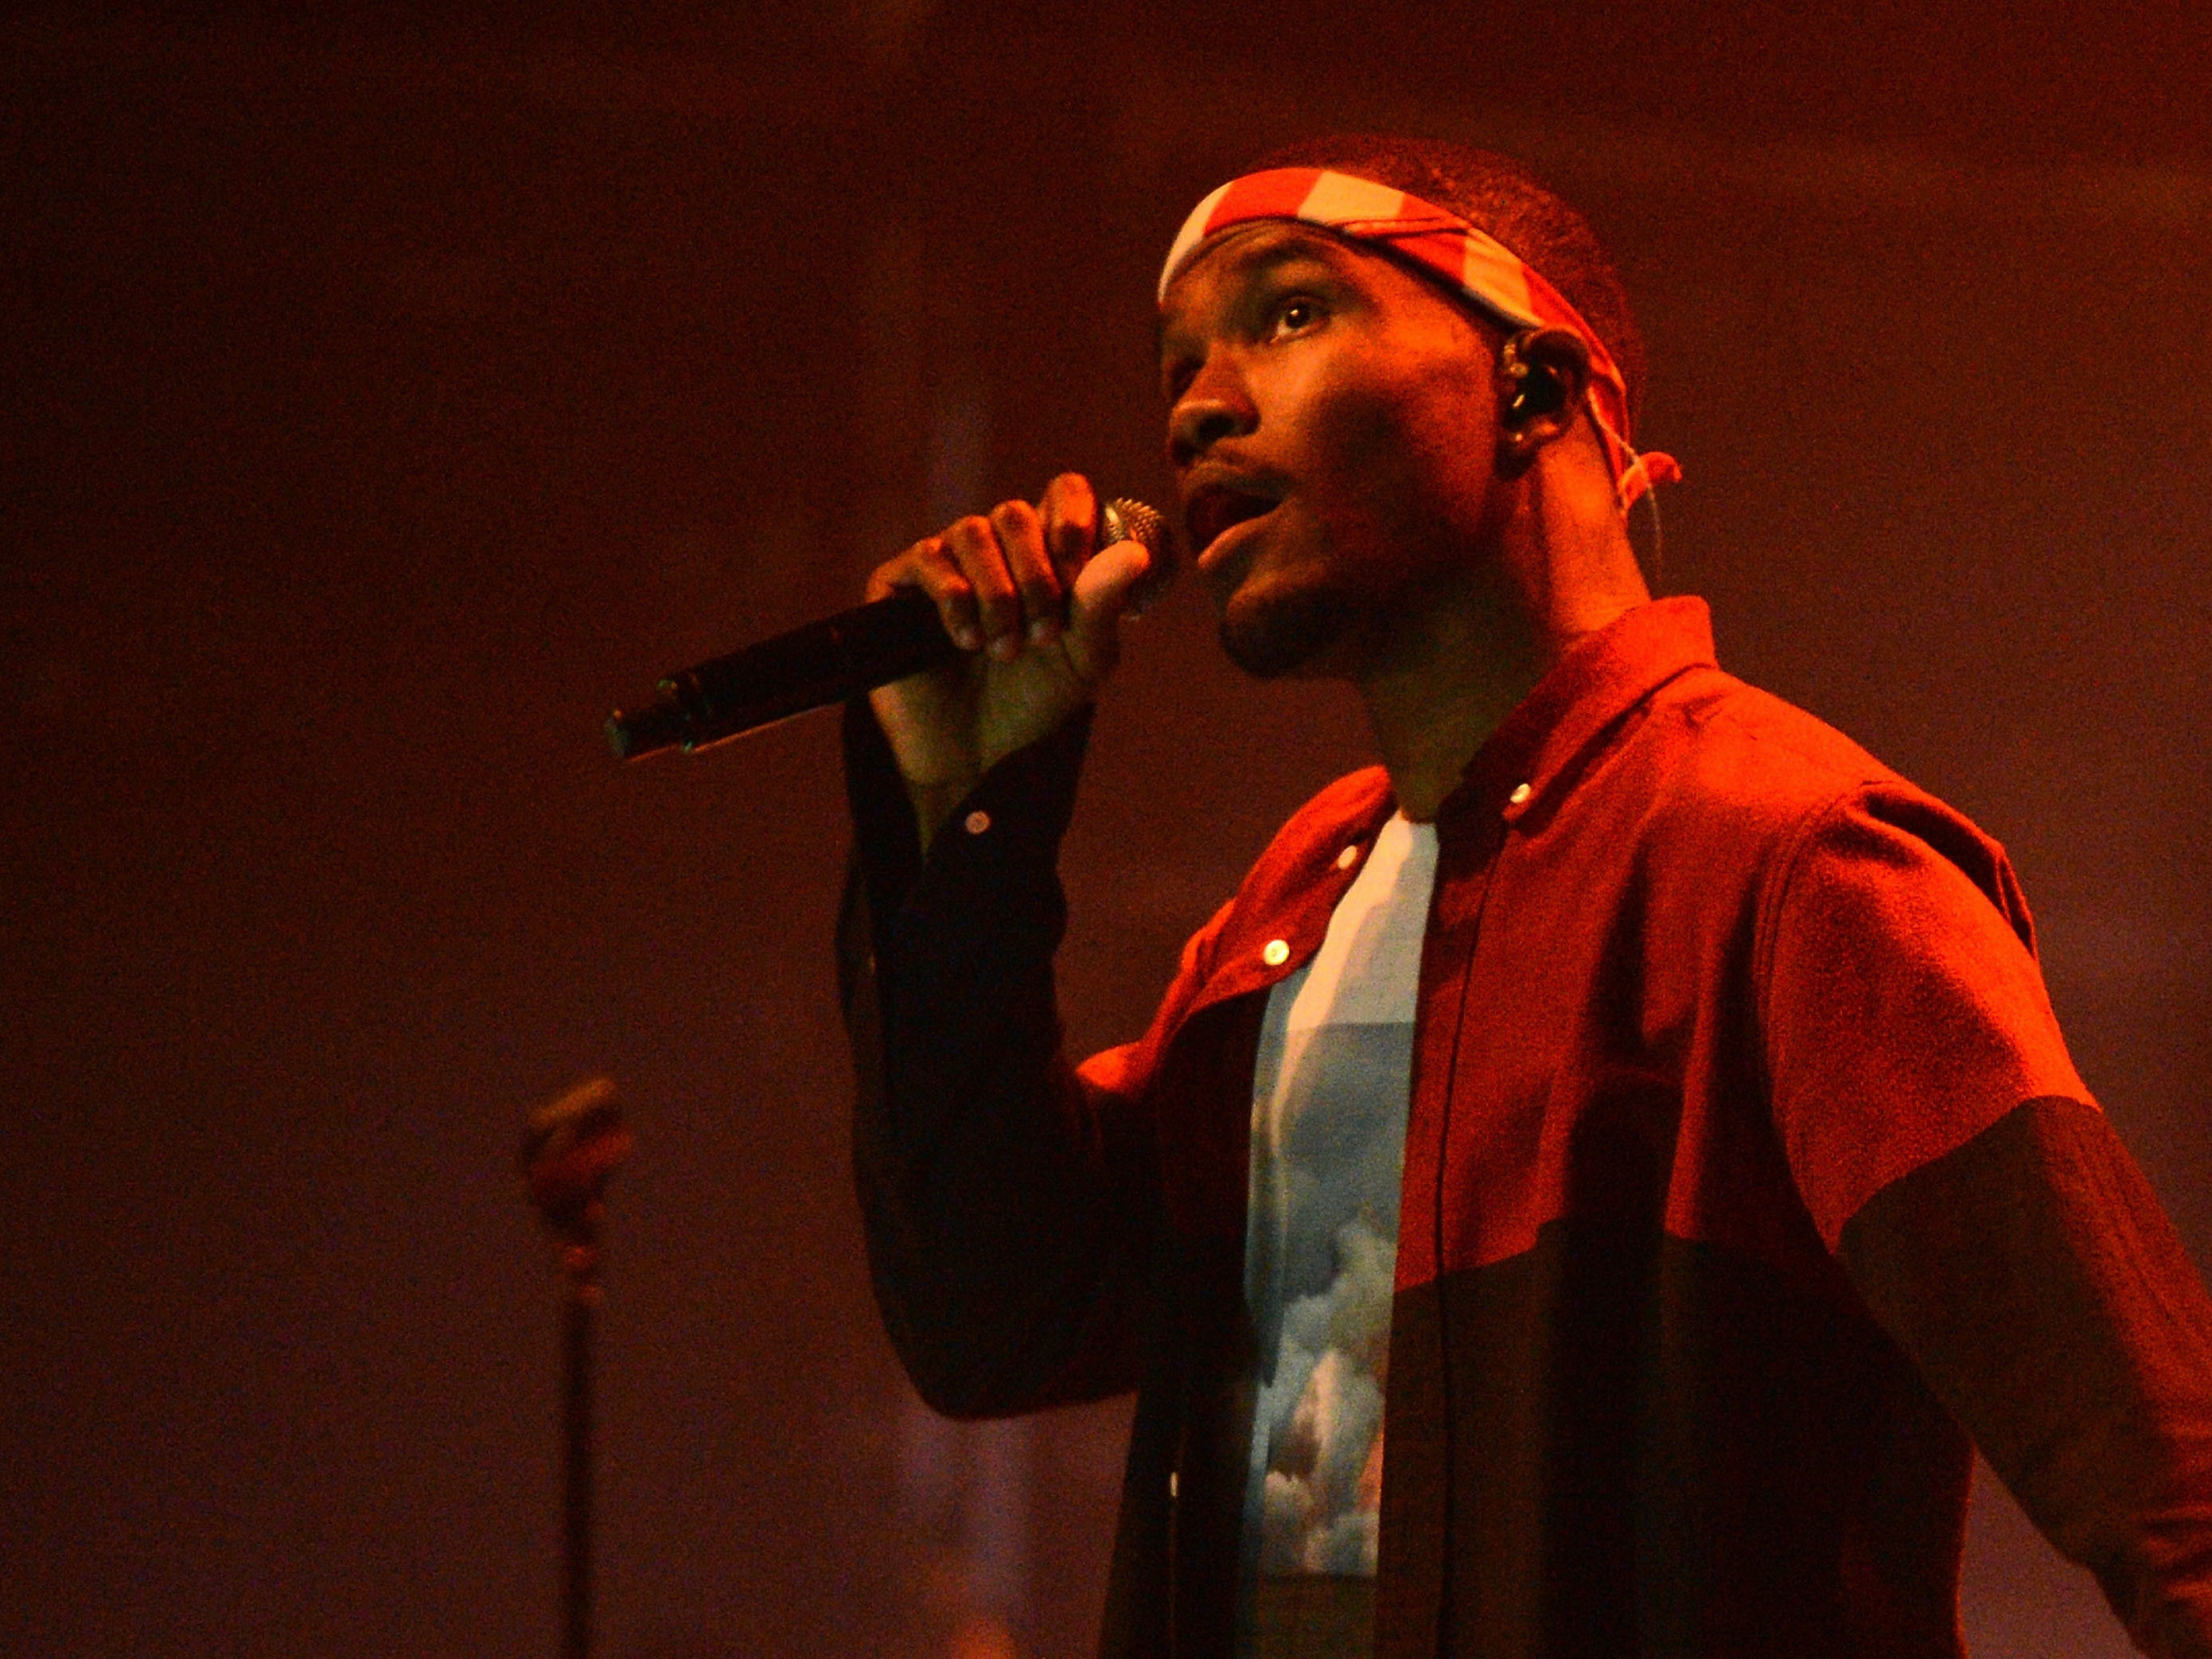 NEW YORK, NY - JULY 26:  Singer Frank Ocean performs at Terminal 5 on July 26, 2012 in New York City.  (Photo by Jason Kempin/Getty Images)